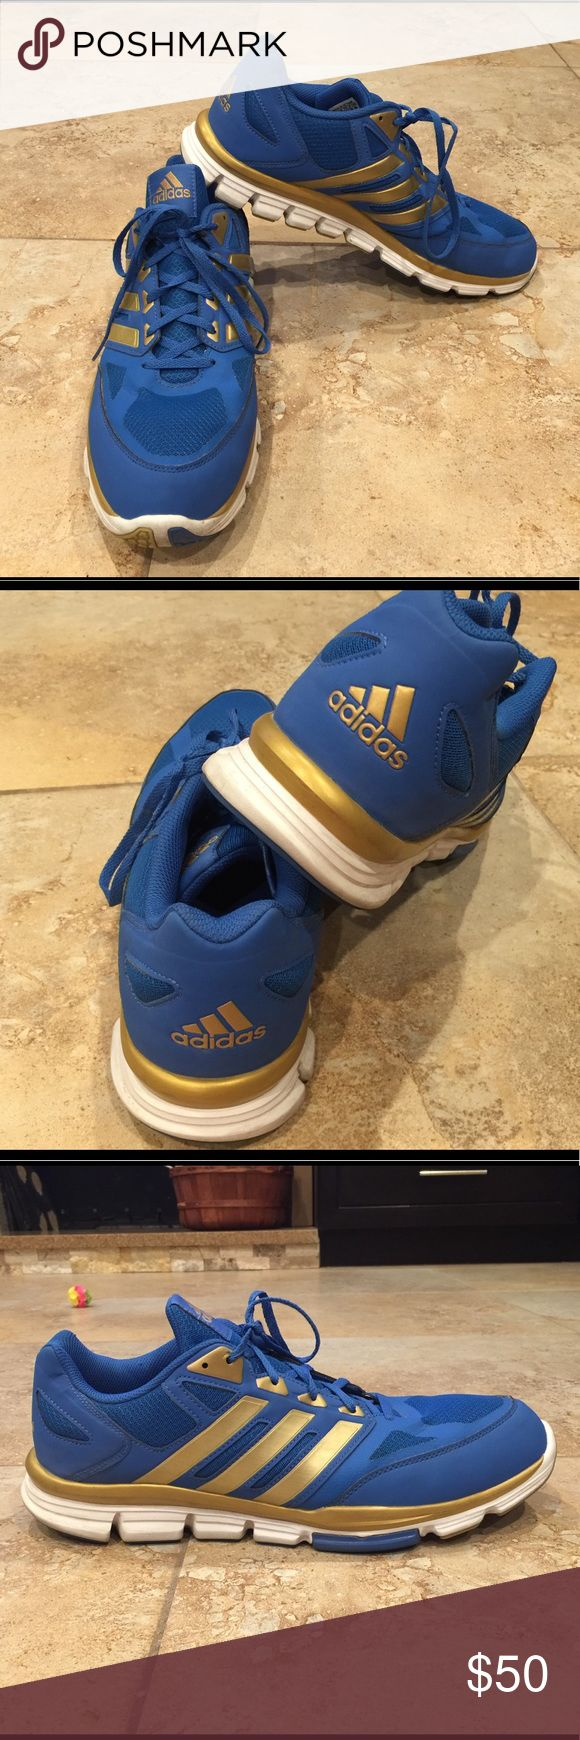 Adidas man's shoe size 14 Used ones perfect condition blue and gold color. adidas Shoes Athletic Shoes